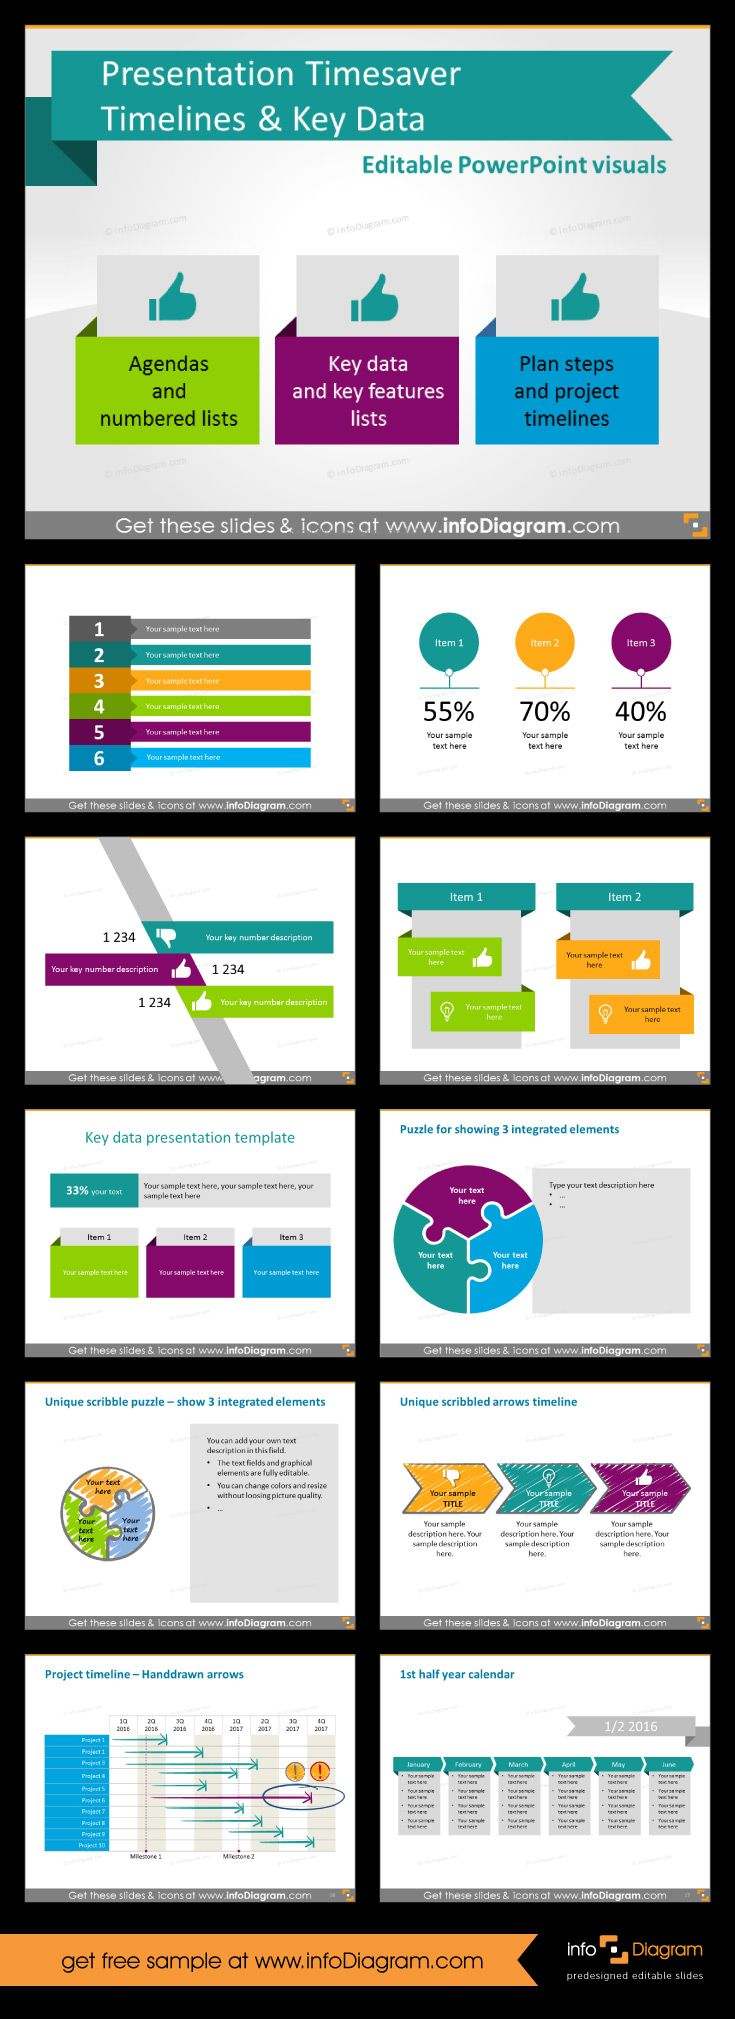 45 best business powerpoint templates images on pinterest time saver graphics for business presentations make quickly an agenda show key numbers ppt templateswot toneelgroepblik